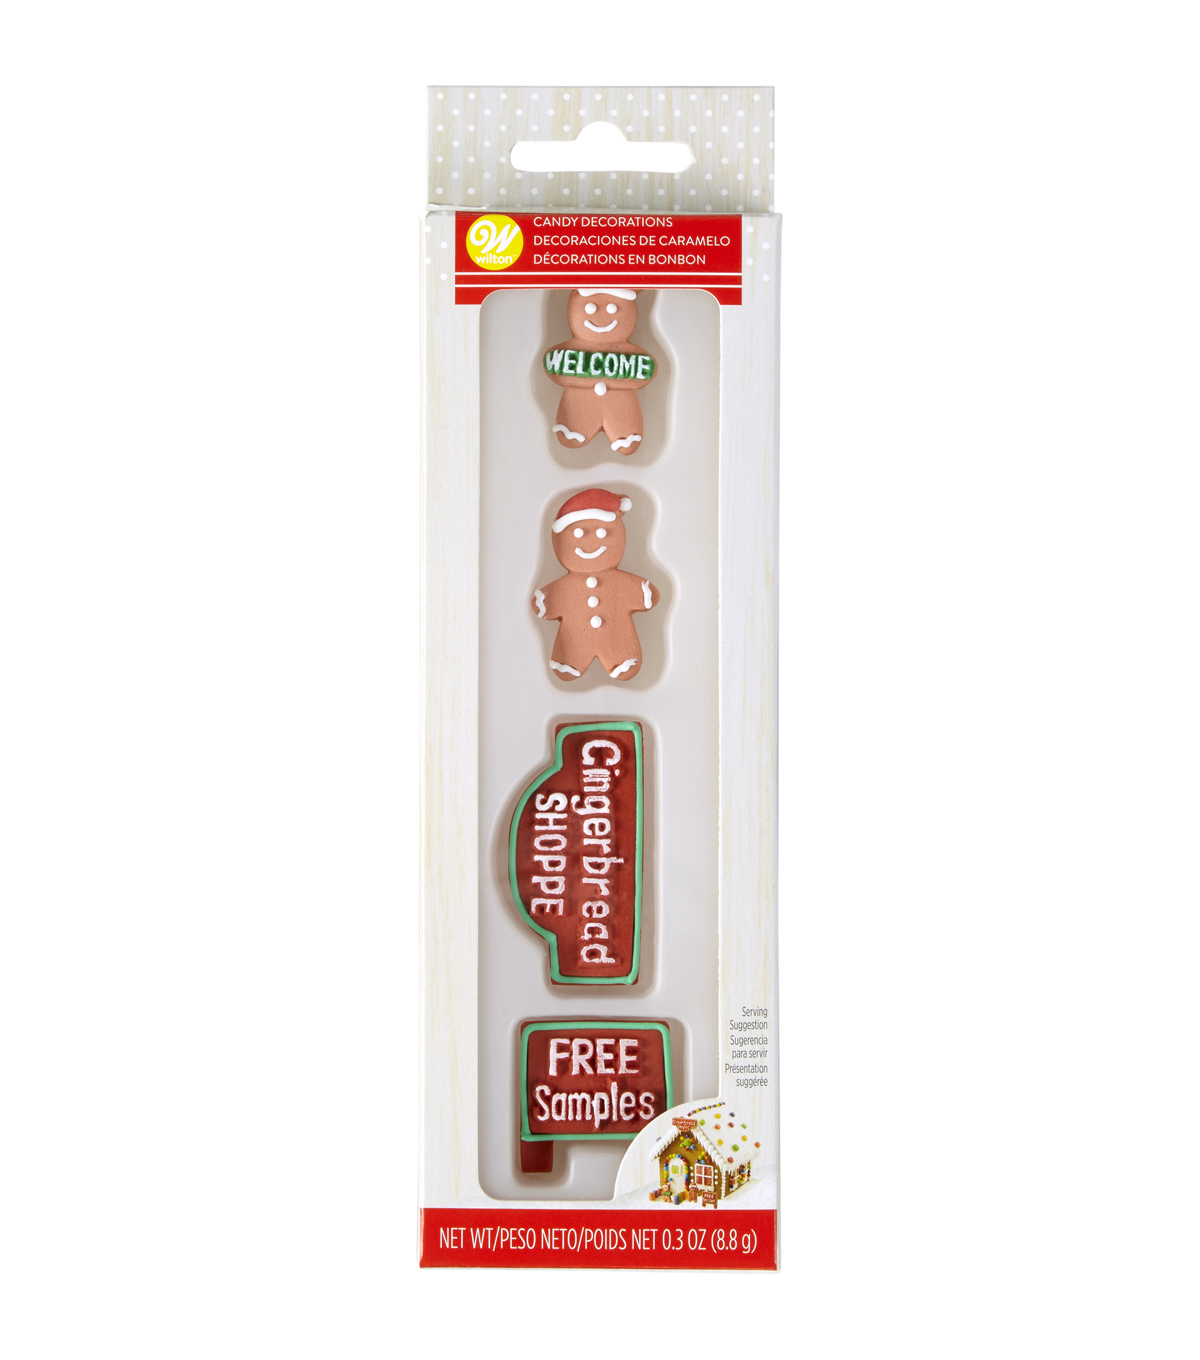 Wilton 4 pk Gingerbread Men & Holiday Signs Candy Decorations